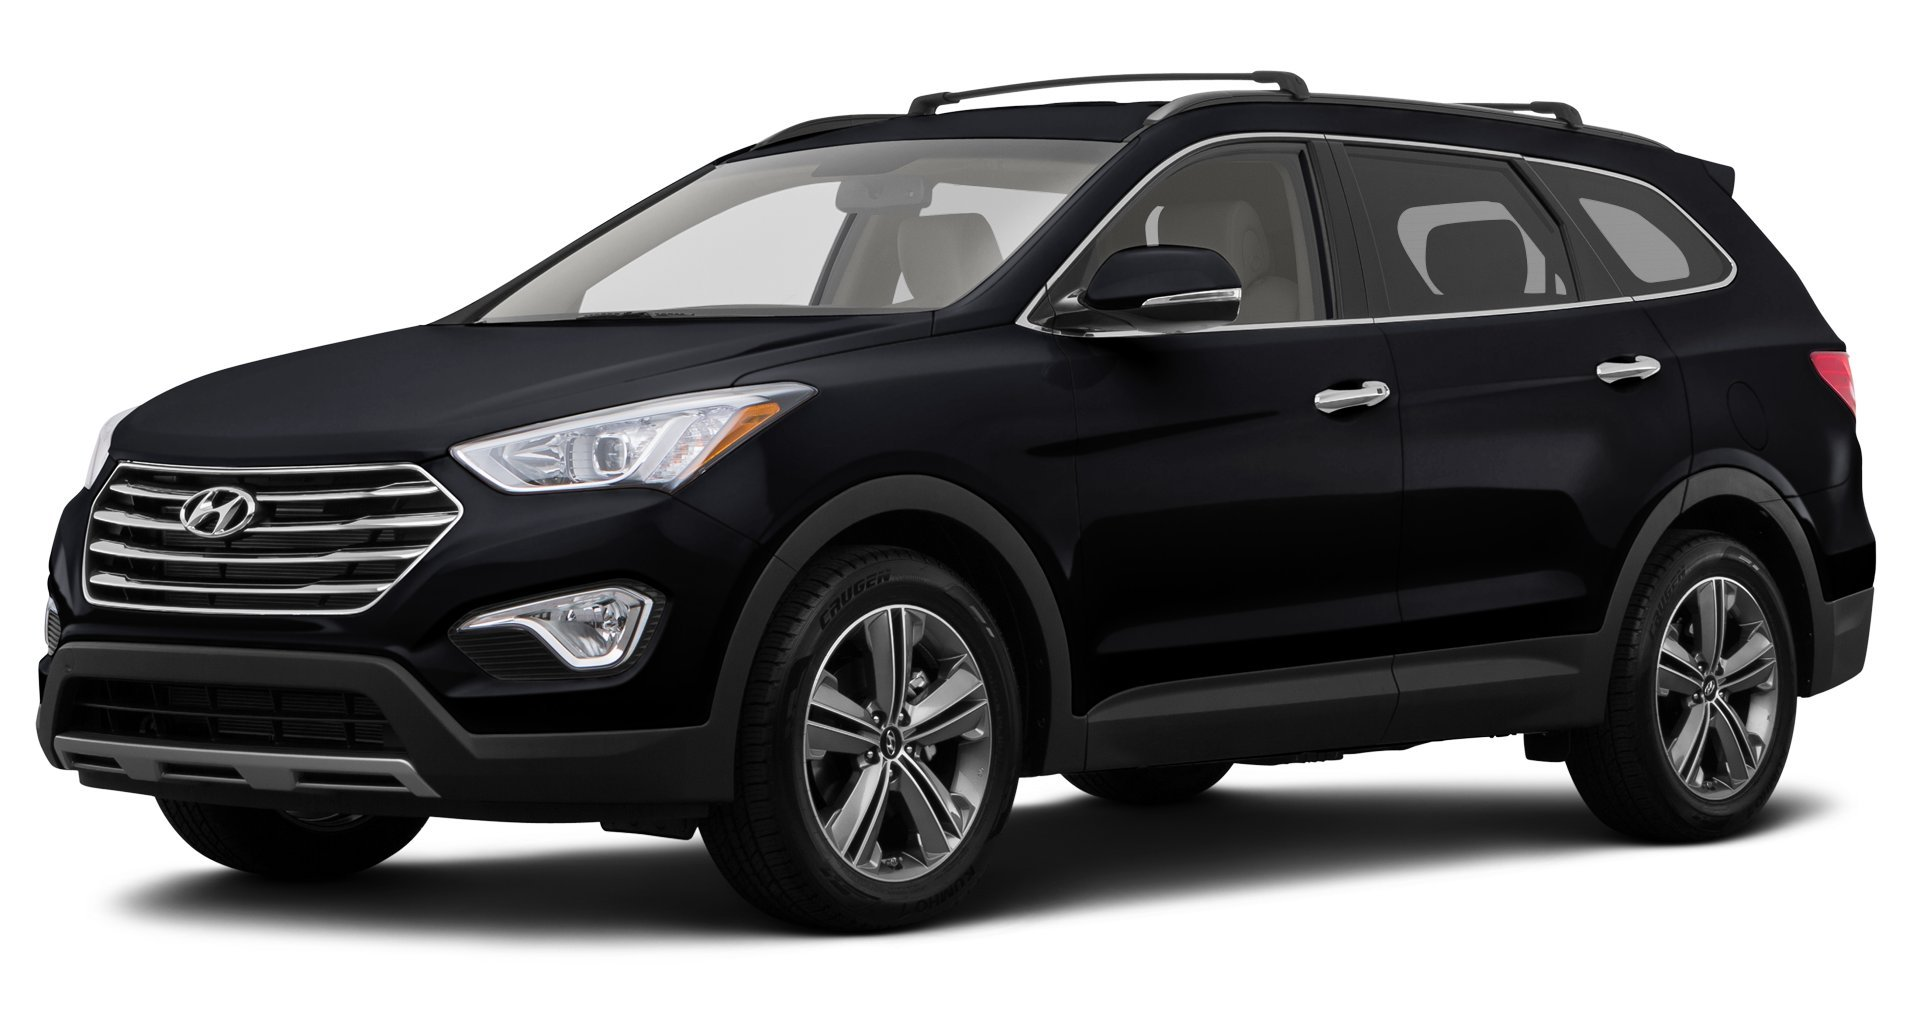 2015 hyundai santa fe reviews images and specs vehicles. Black Bedroom Furniture Sets. Home Design Ideas